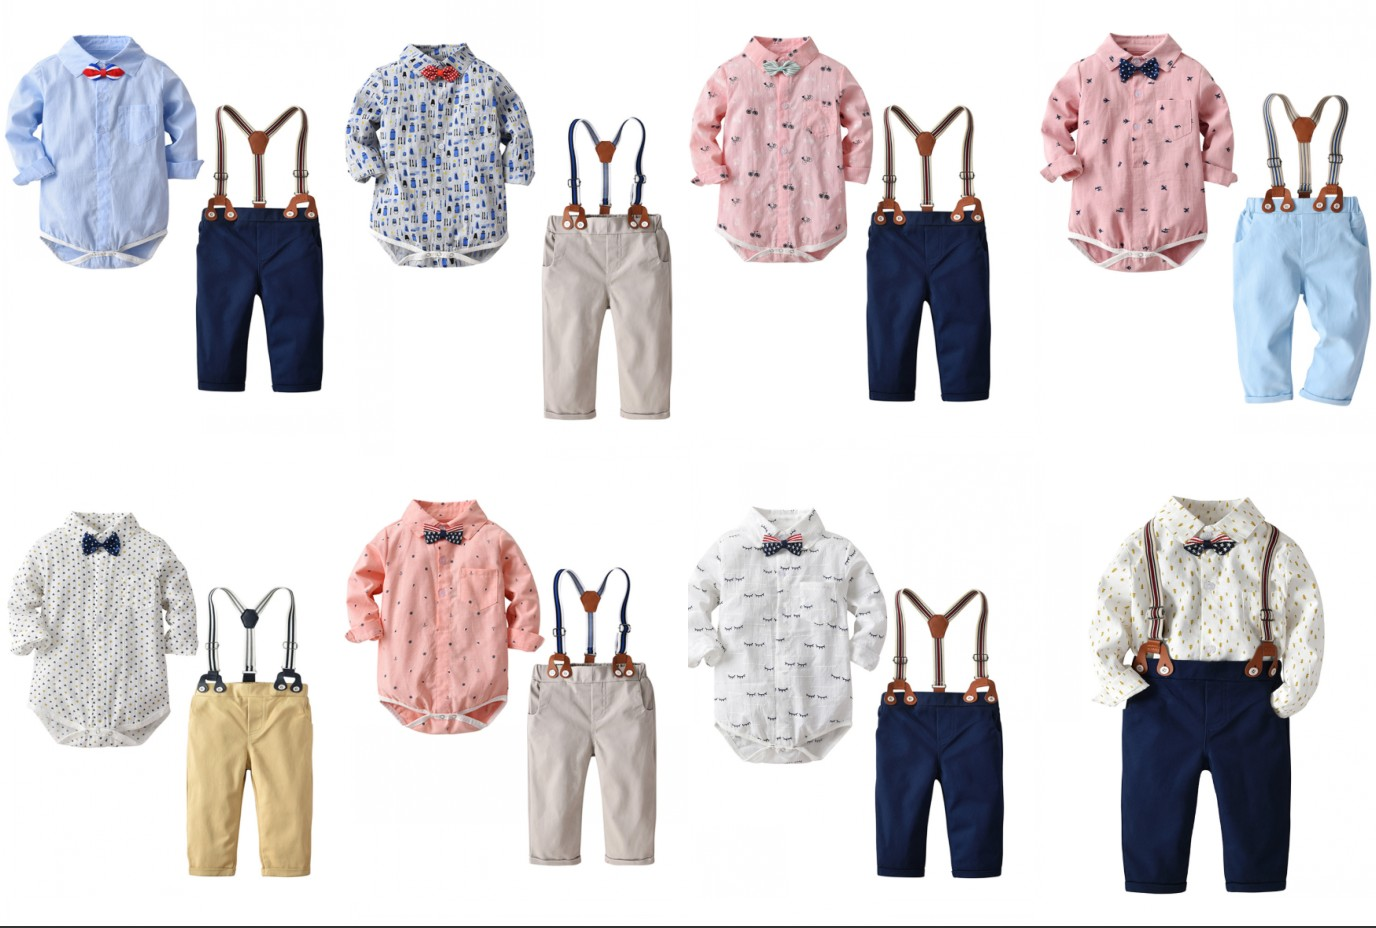 Toddler Children Clothes Suits Gentleman Style Baby Boys Clothing Sets Shirt Bib Pants Autumn Kids Infant Costume Y11469